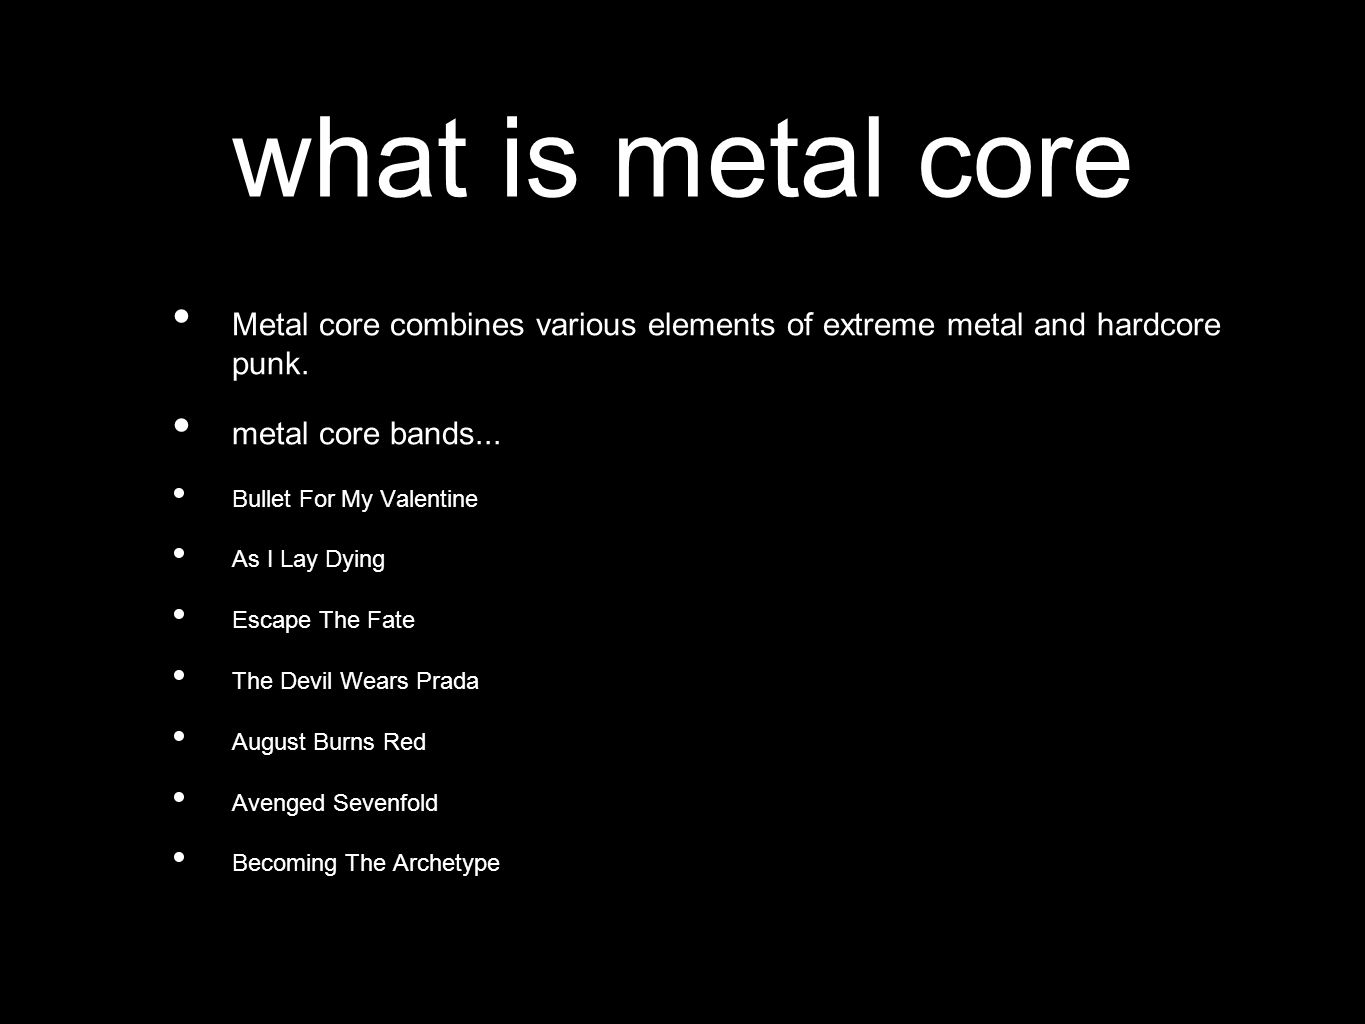 what is metal core Metal core combines various elements of extreme metal and hardcore punk.